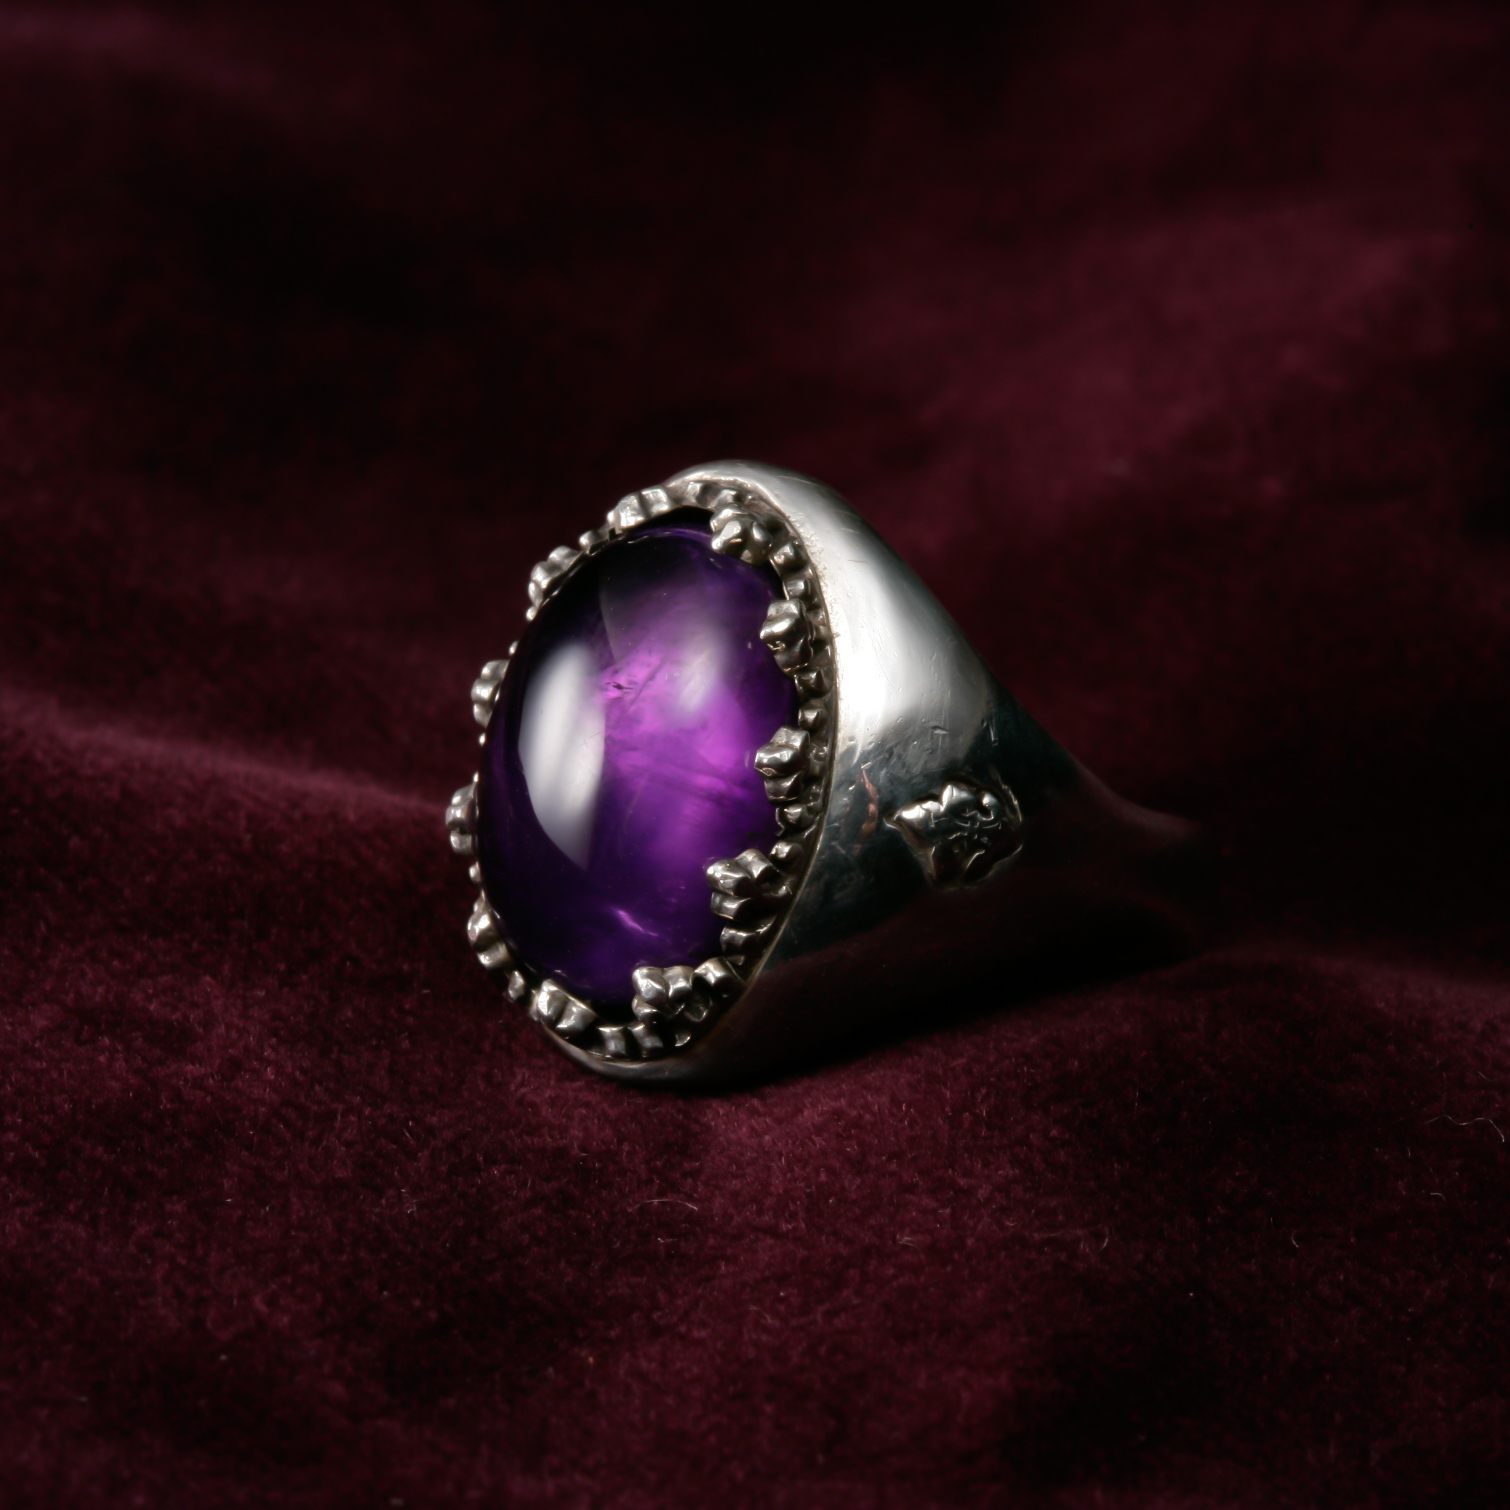 Cabochon Amethyst Ring / with Skull Object